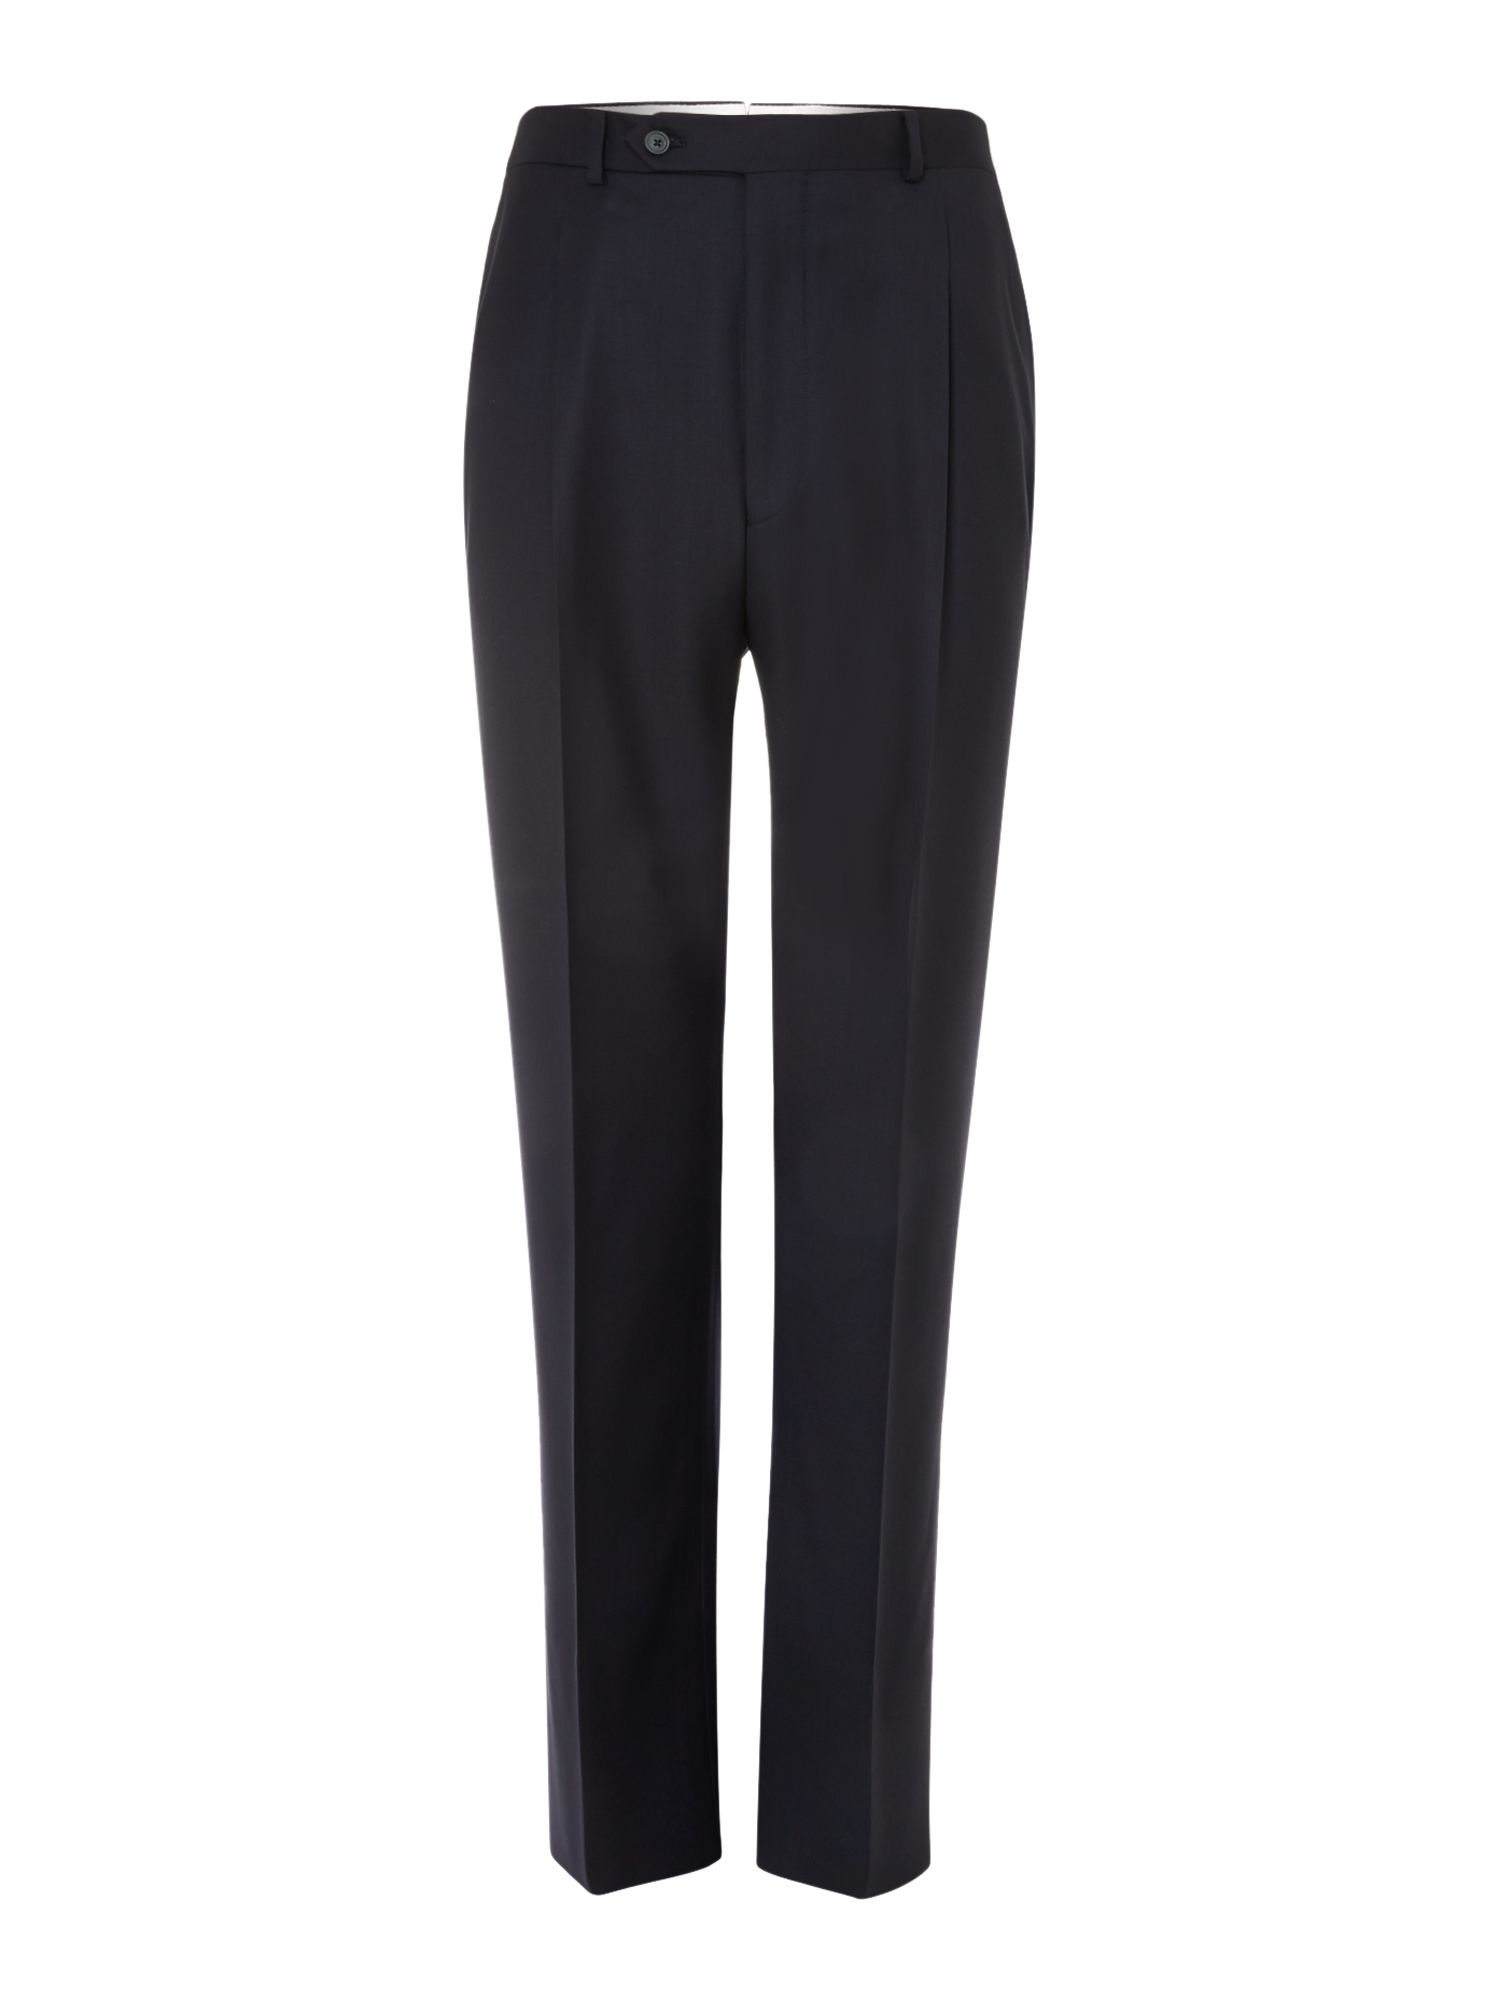 Classic fit formal trousers